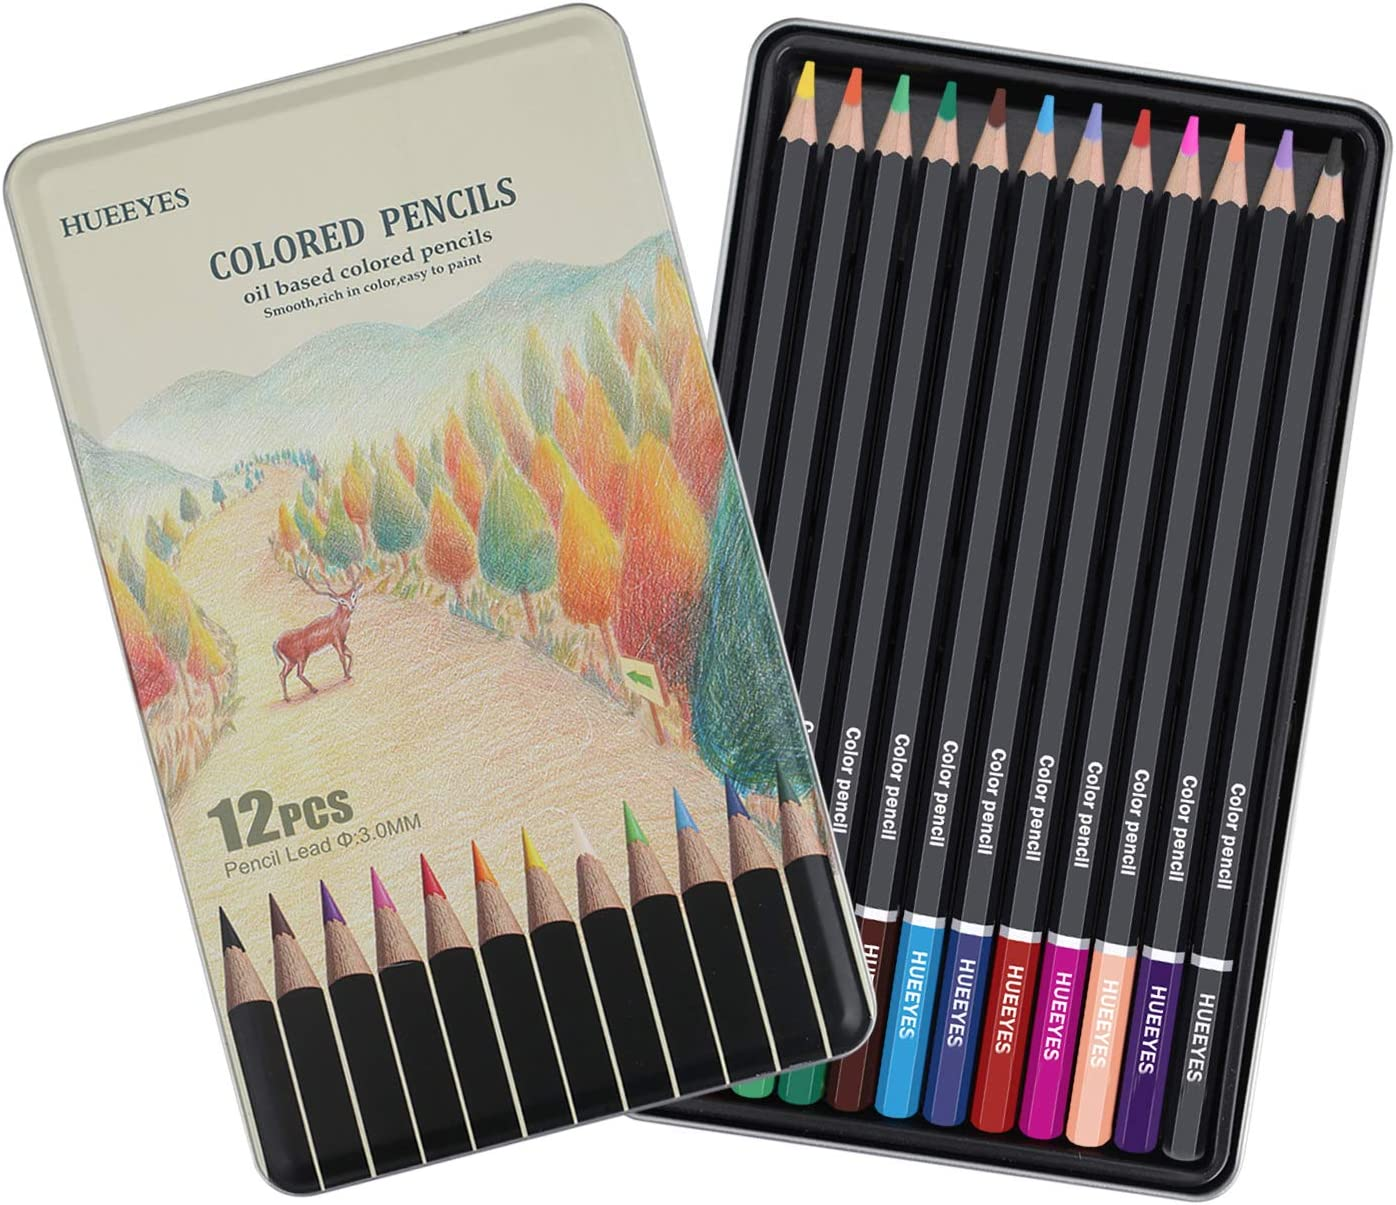 12 oil based Colored Pencils with Vibrant Color Professional Art School Supplies for Kids & Adults Coloring Books, Perfect Holiday Gifts for Artist Drawing HUEEYES